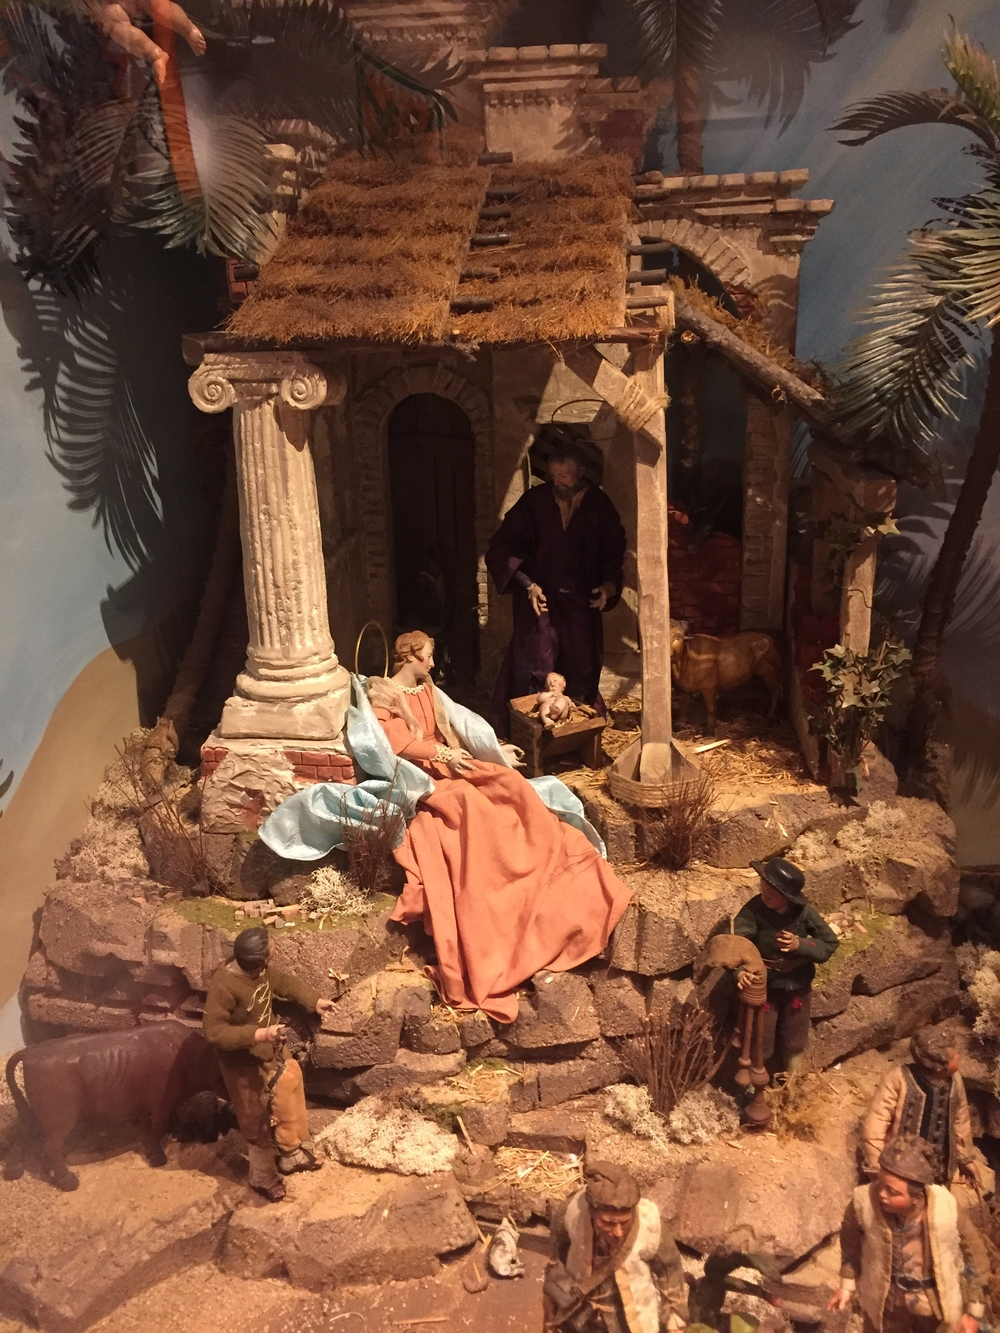 NATIVITY SETTING FOR 17TH CENTURY PRESEPI FIGURES CREATED BY NAVIDAD NATIVITIES IN 2005.